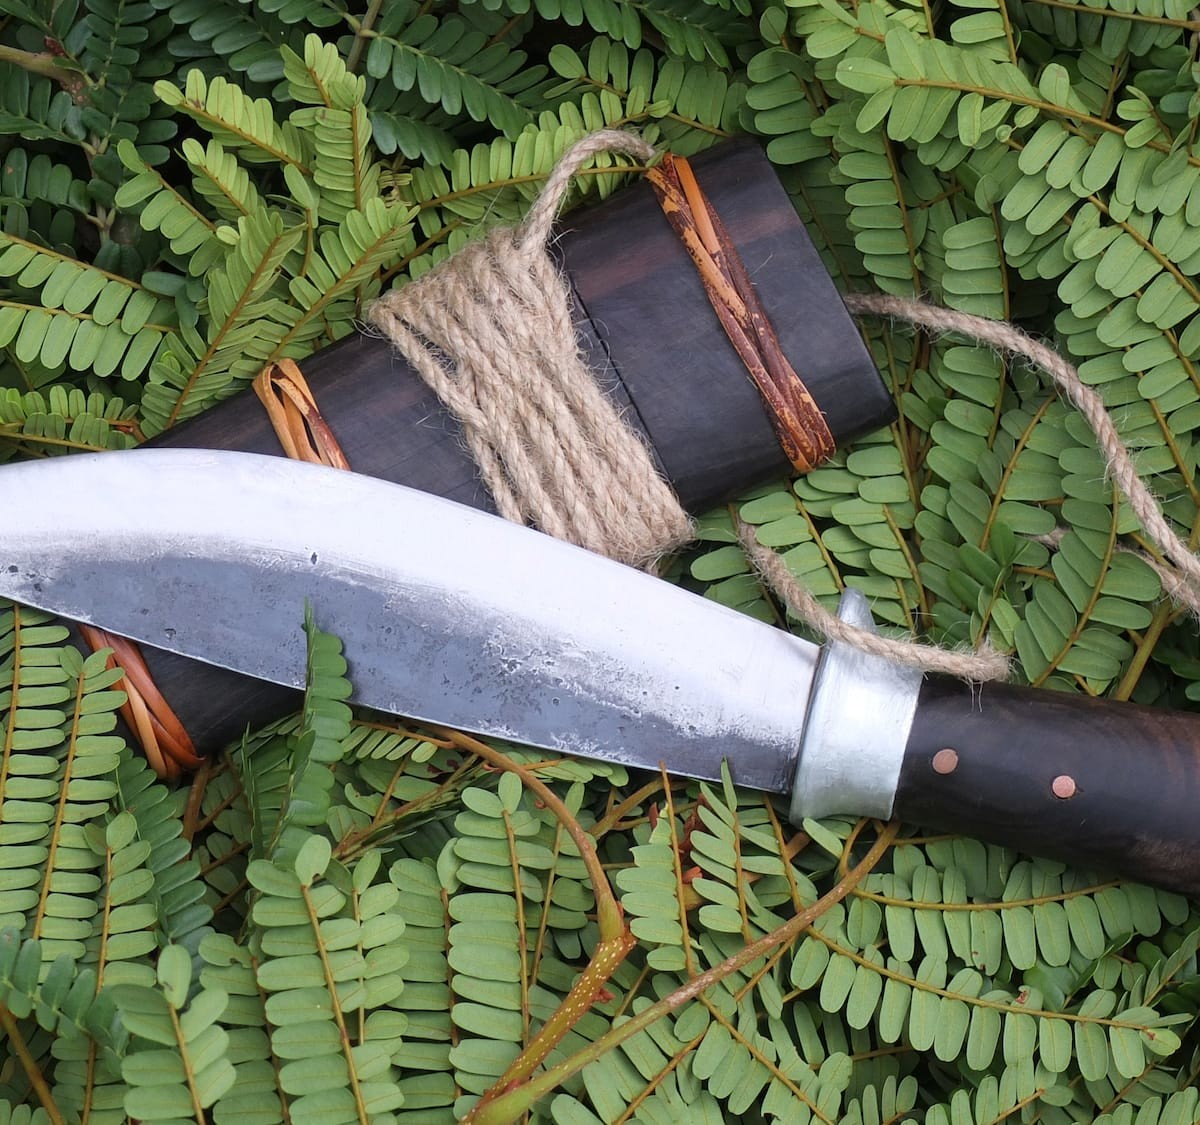 The Leaf hand-forged camping knife can be used for everything